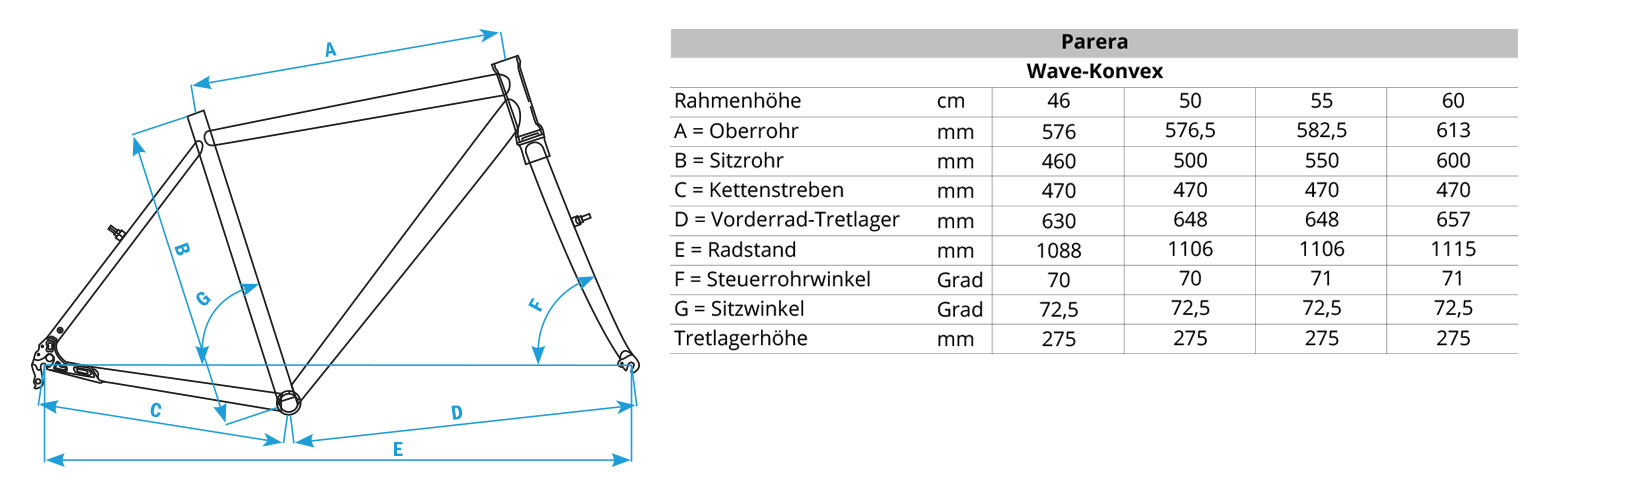 Geometriedaten Parera